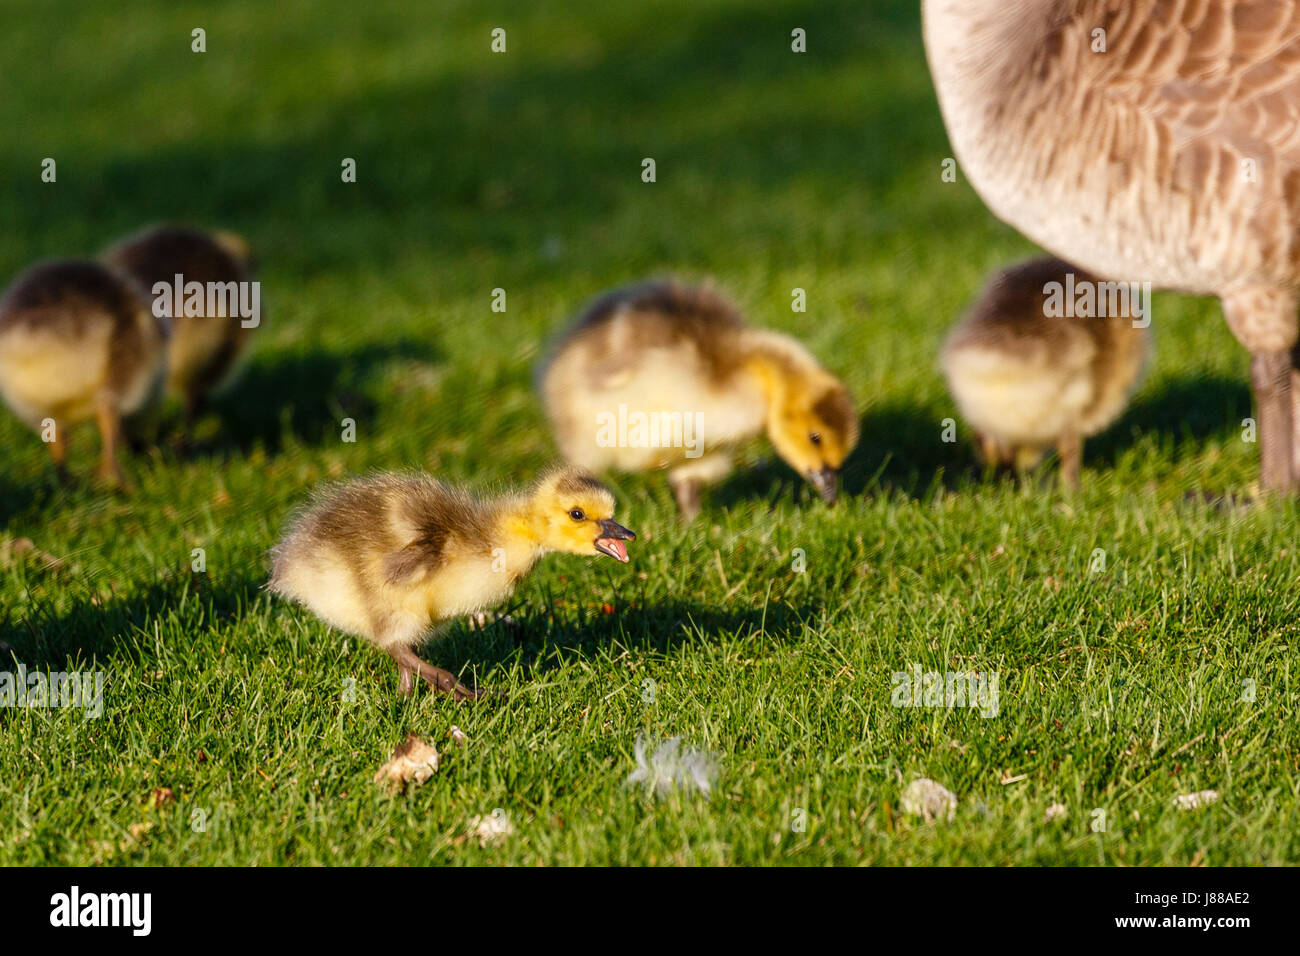 Canada Goose (branta canadensis) gosling yelling about something - Stock Image